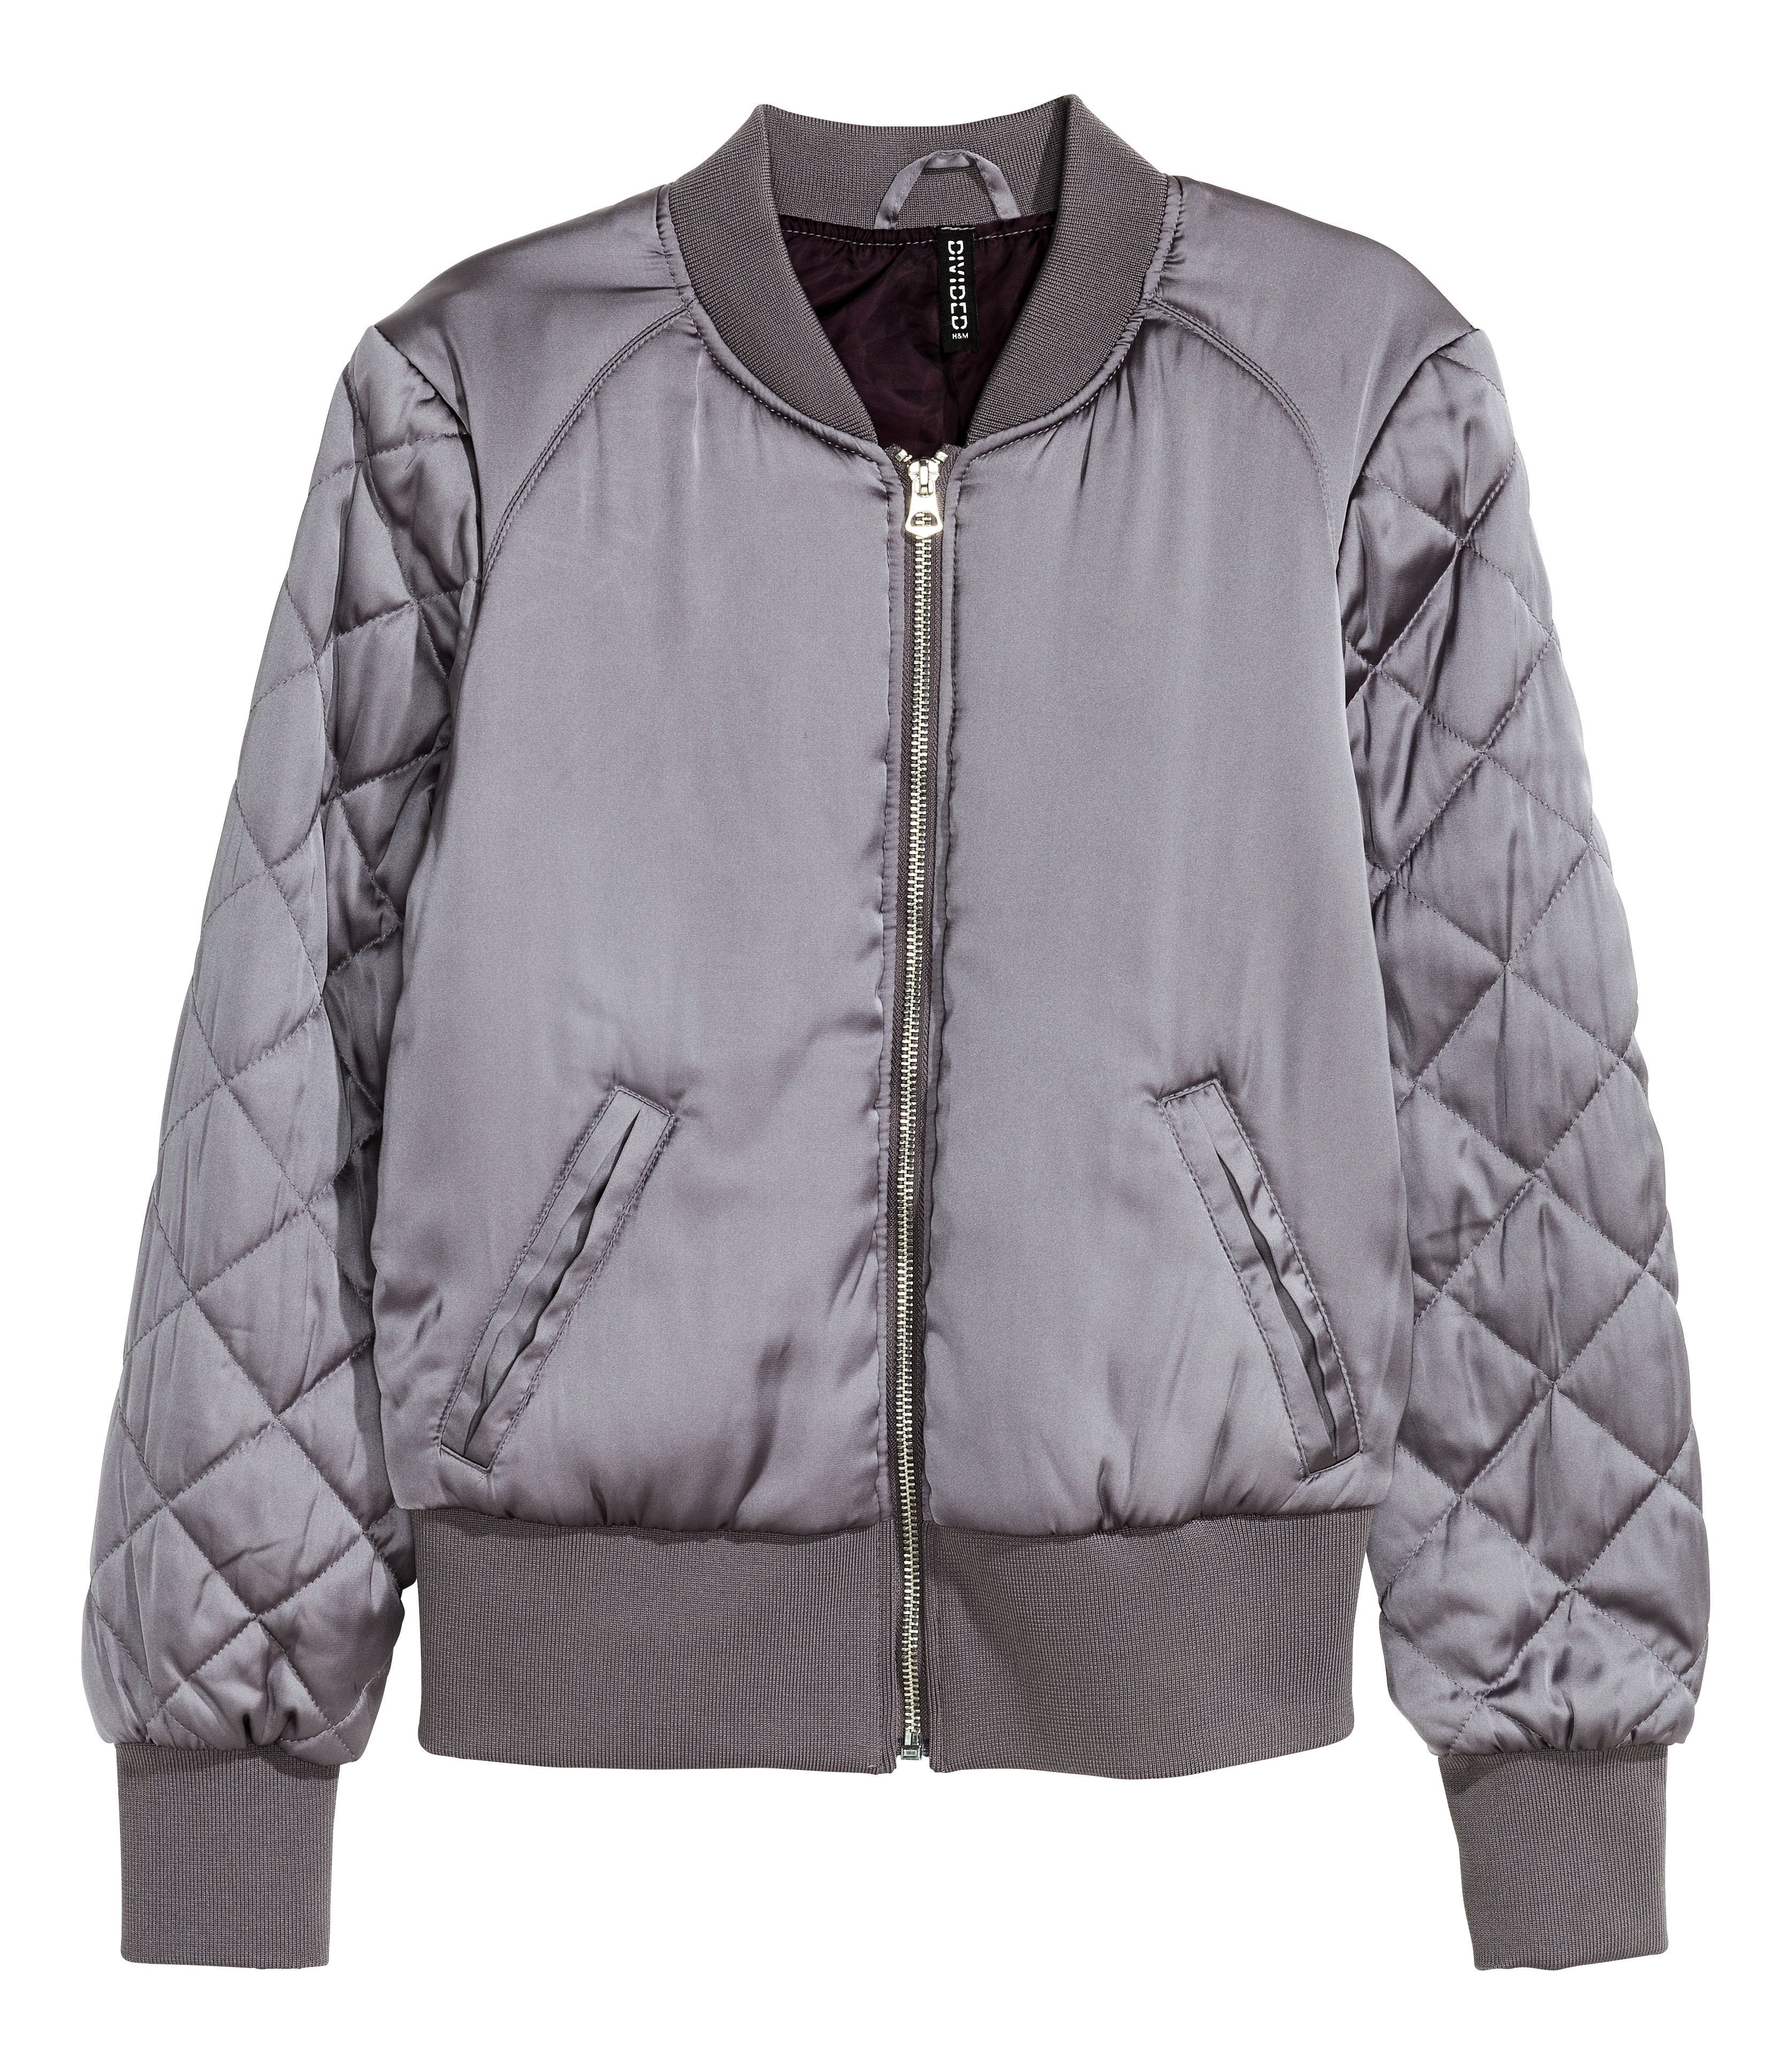 Hm Holiday Best New Arrivals Gift Wish List Padded Bomber Jacket Satin Bomber Jacket Bomber Jacket [ 3856 x 3347 Pixel ]